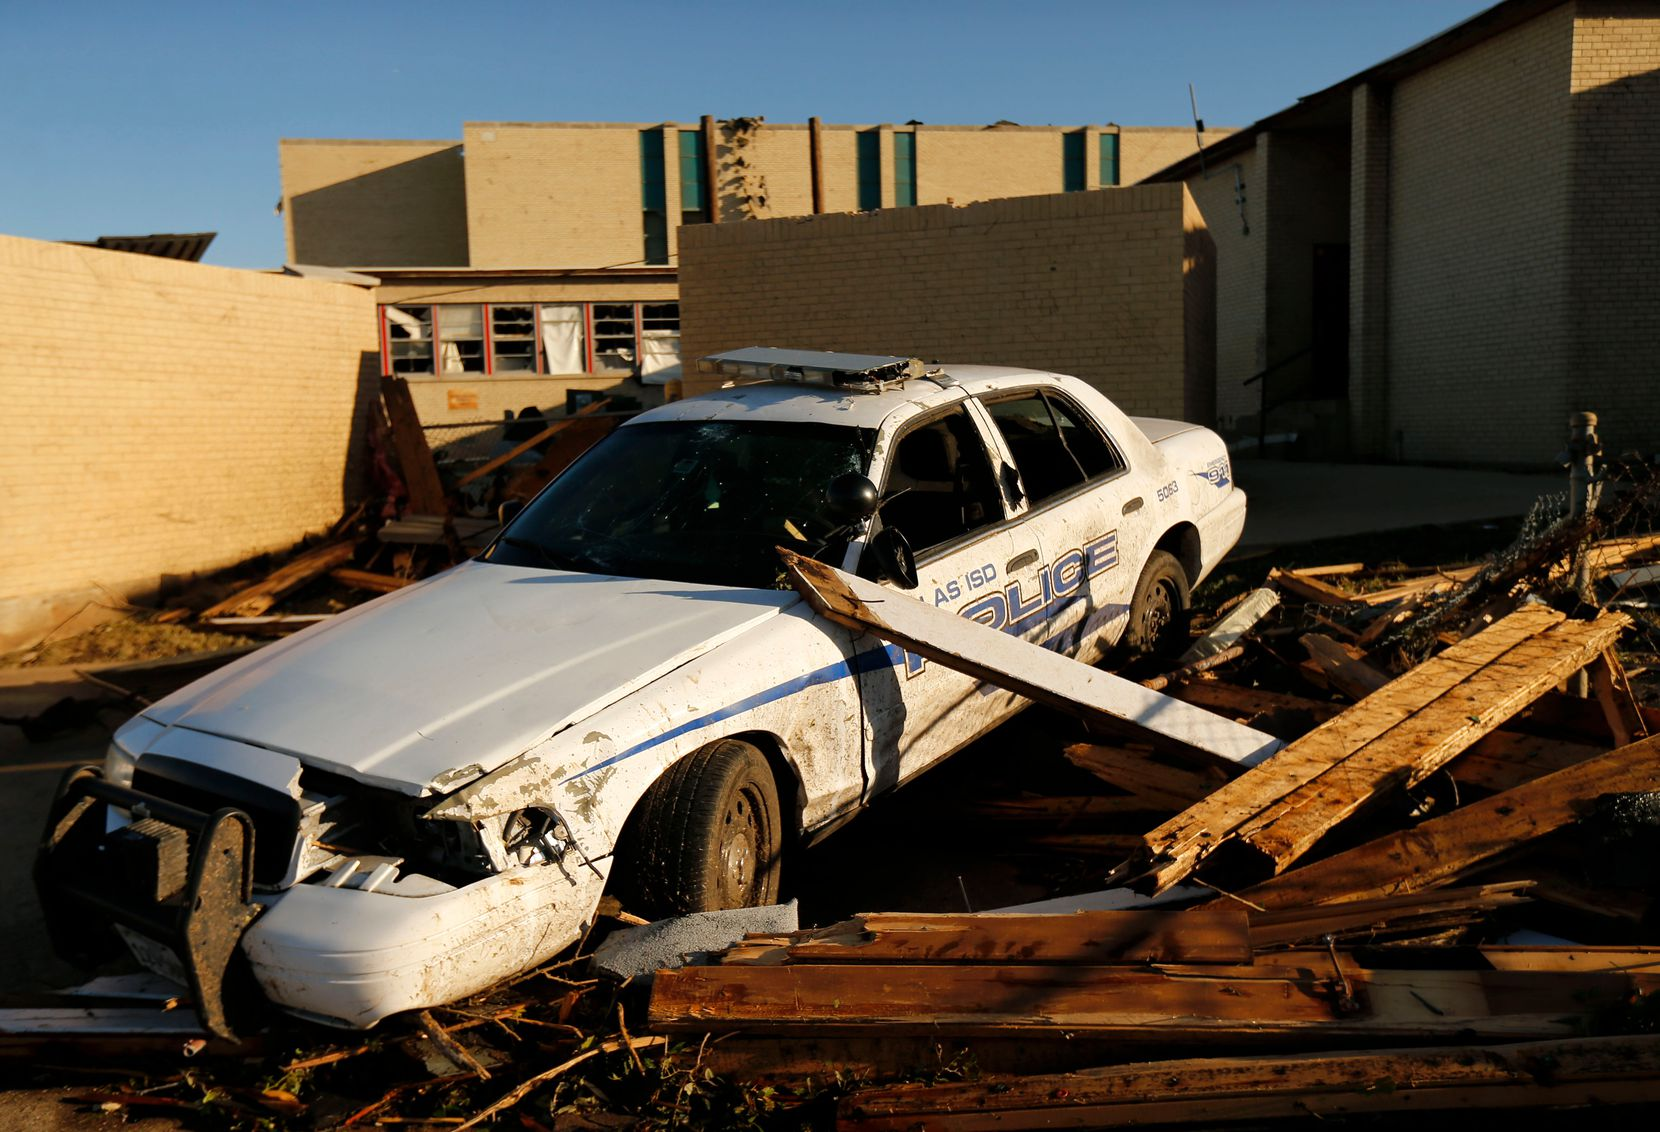 A Dallas ISD school district police patrol car was destroyed by a tornado at Cary Jr. High School in Dallas, Monday, October 21, 2019.